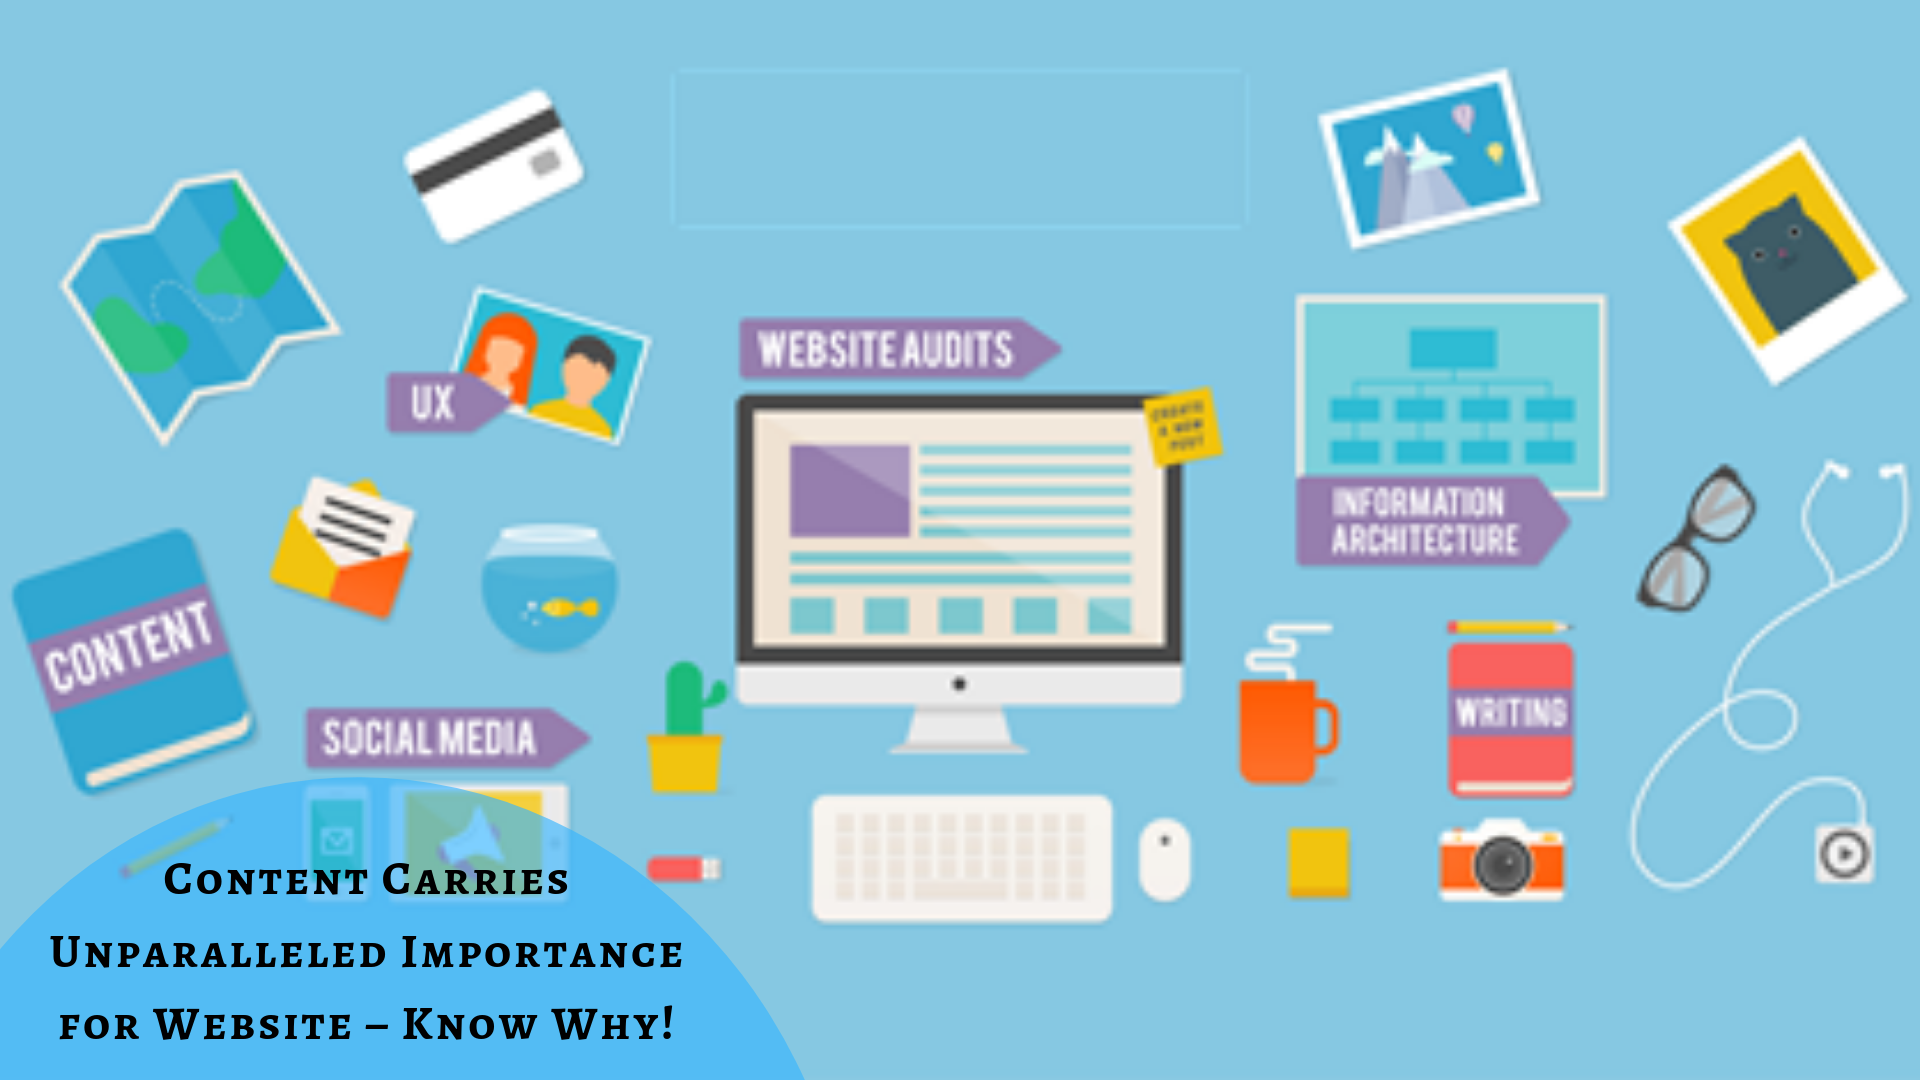 Content Carries Unparalleled Importance for Website – Know Why!